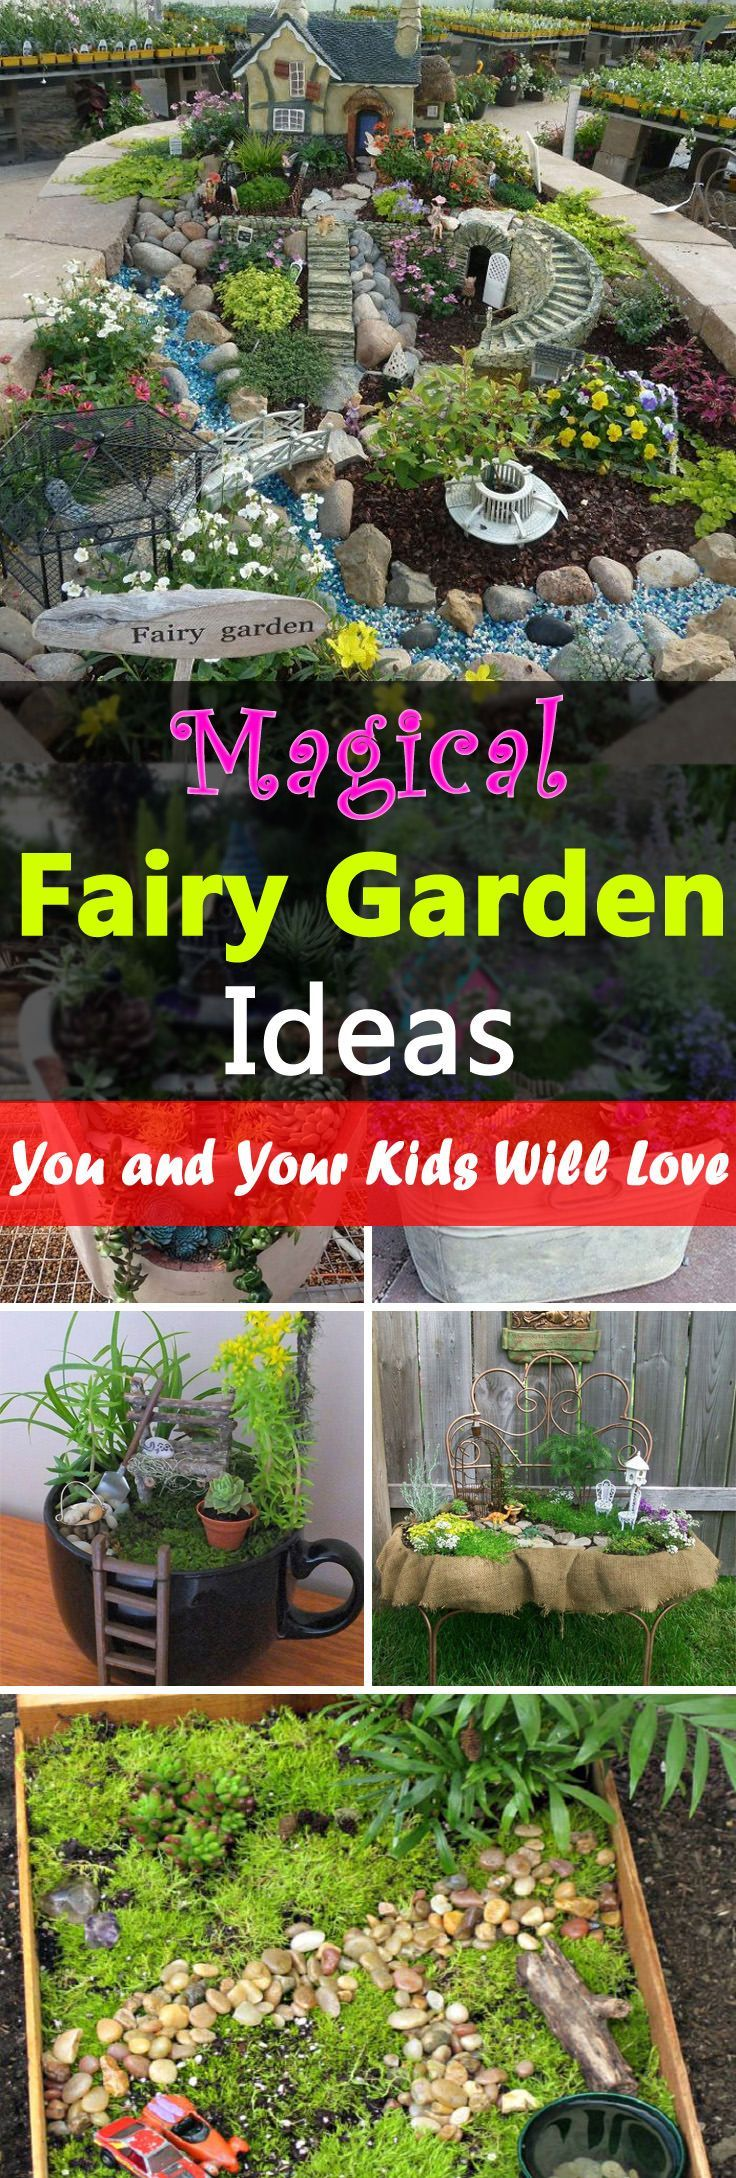 Garden Art Ideas For Kids magical fairy garden ideas you & your kids will love | garden